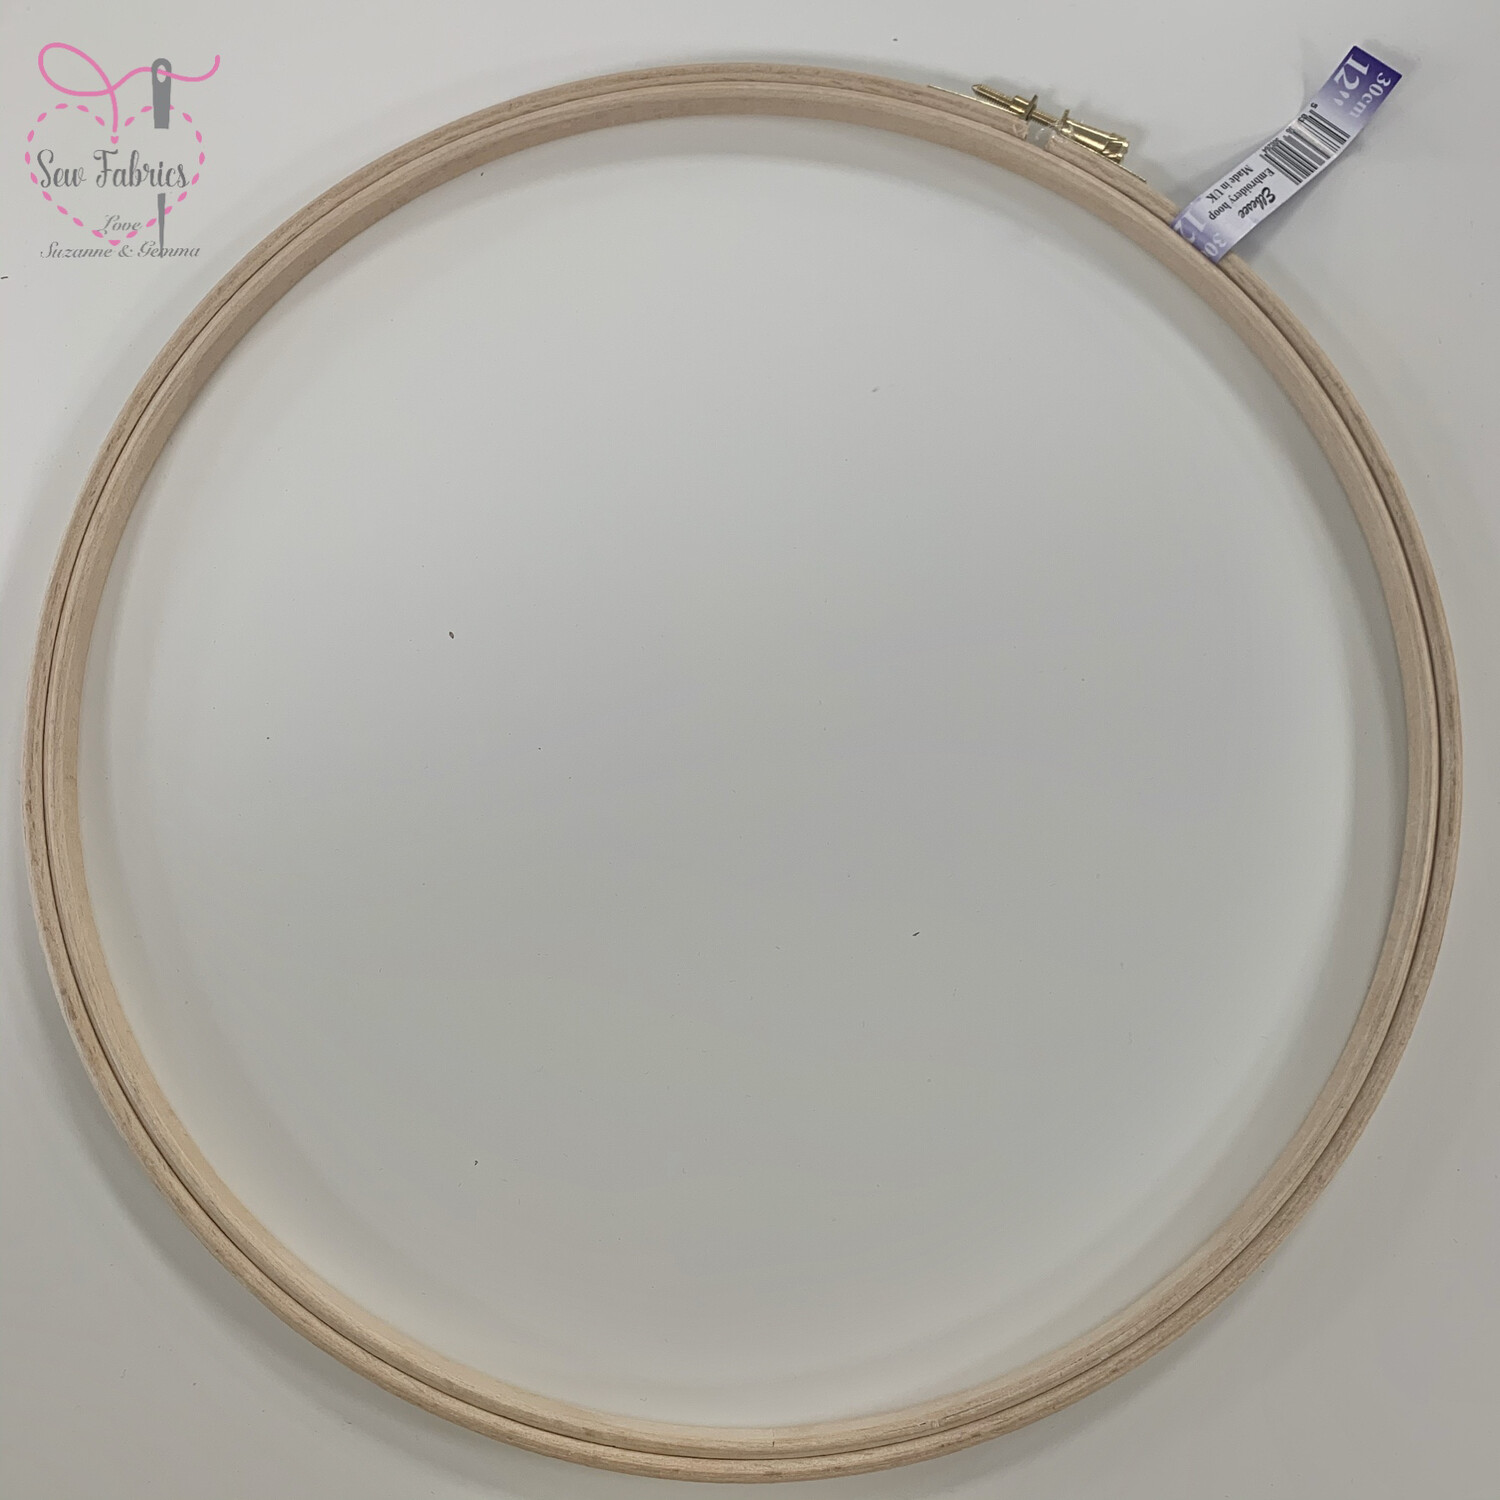 "12"" Embroidery, Sewing Wooden Hoop"